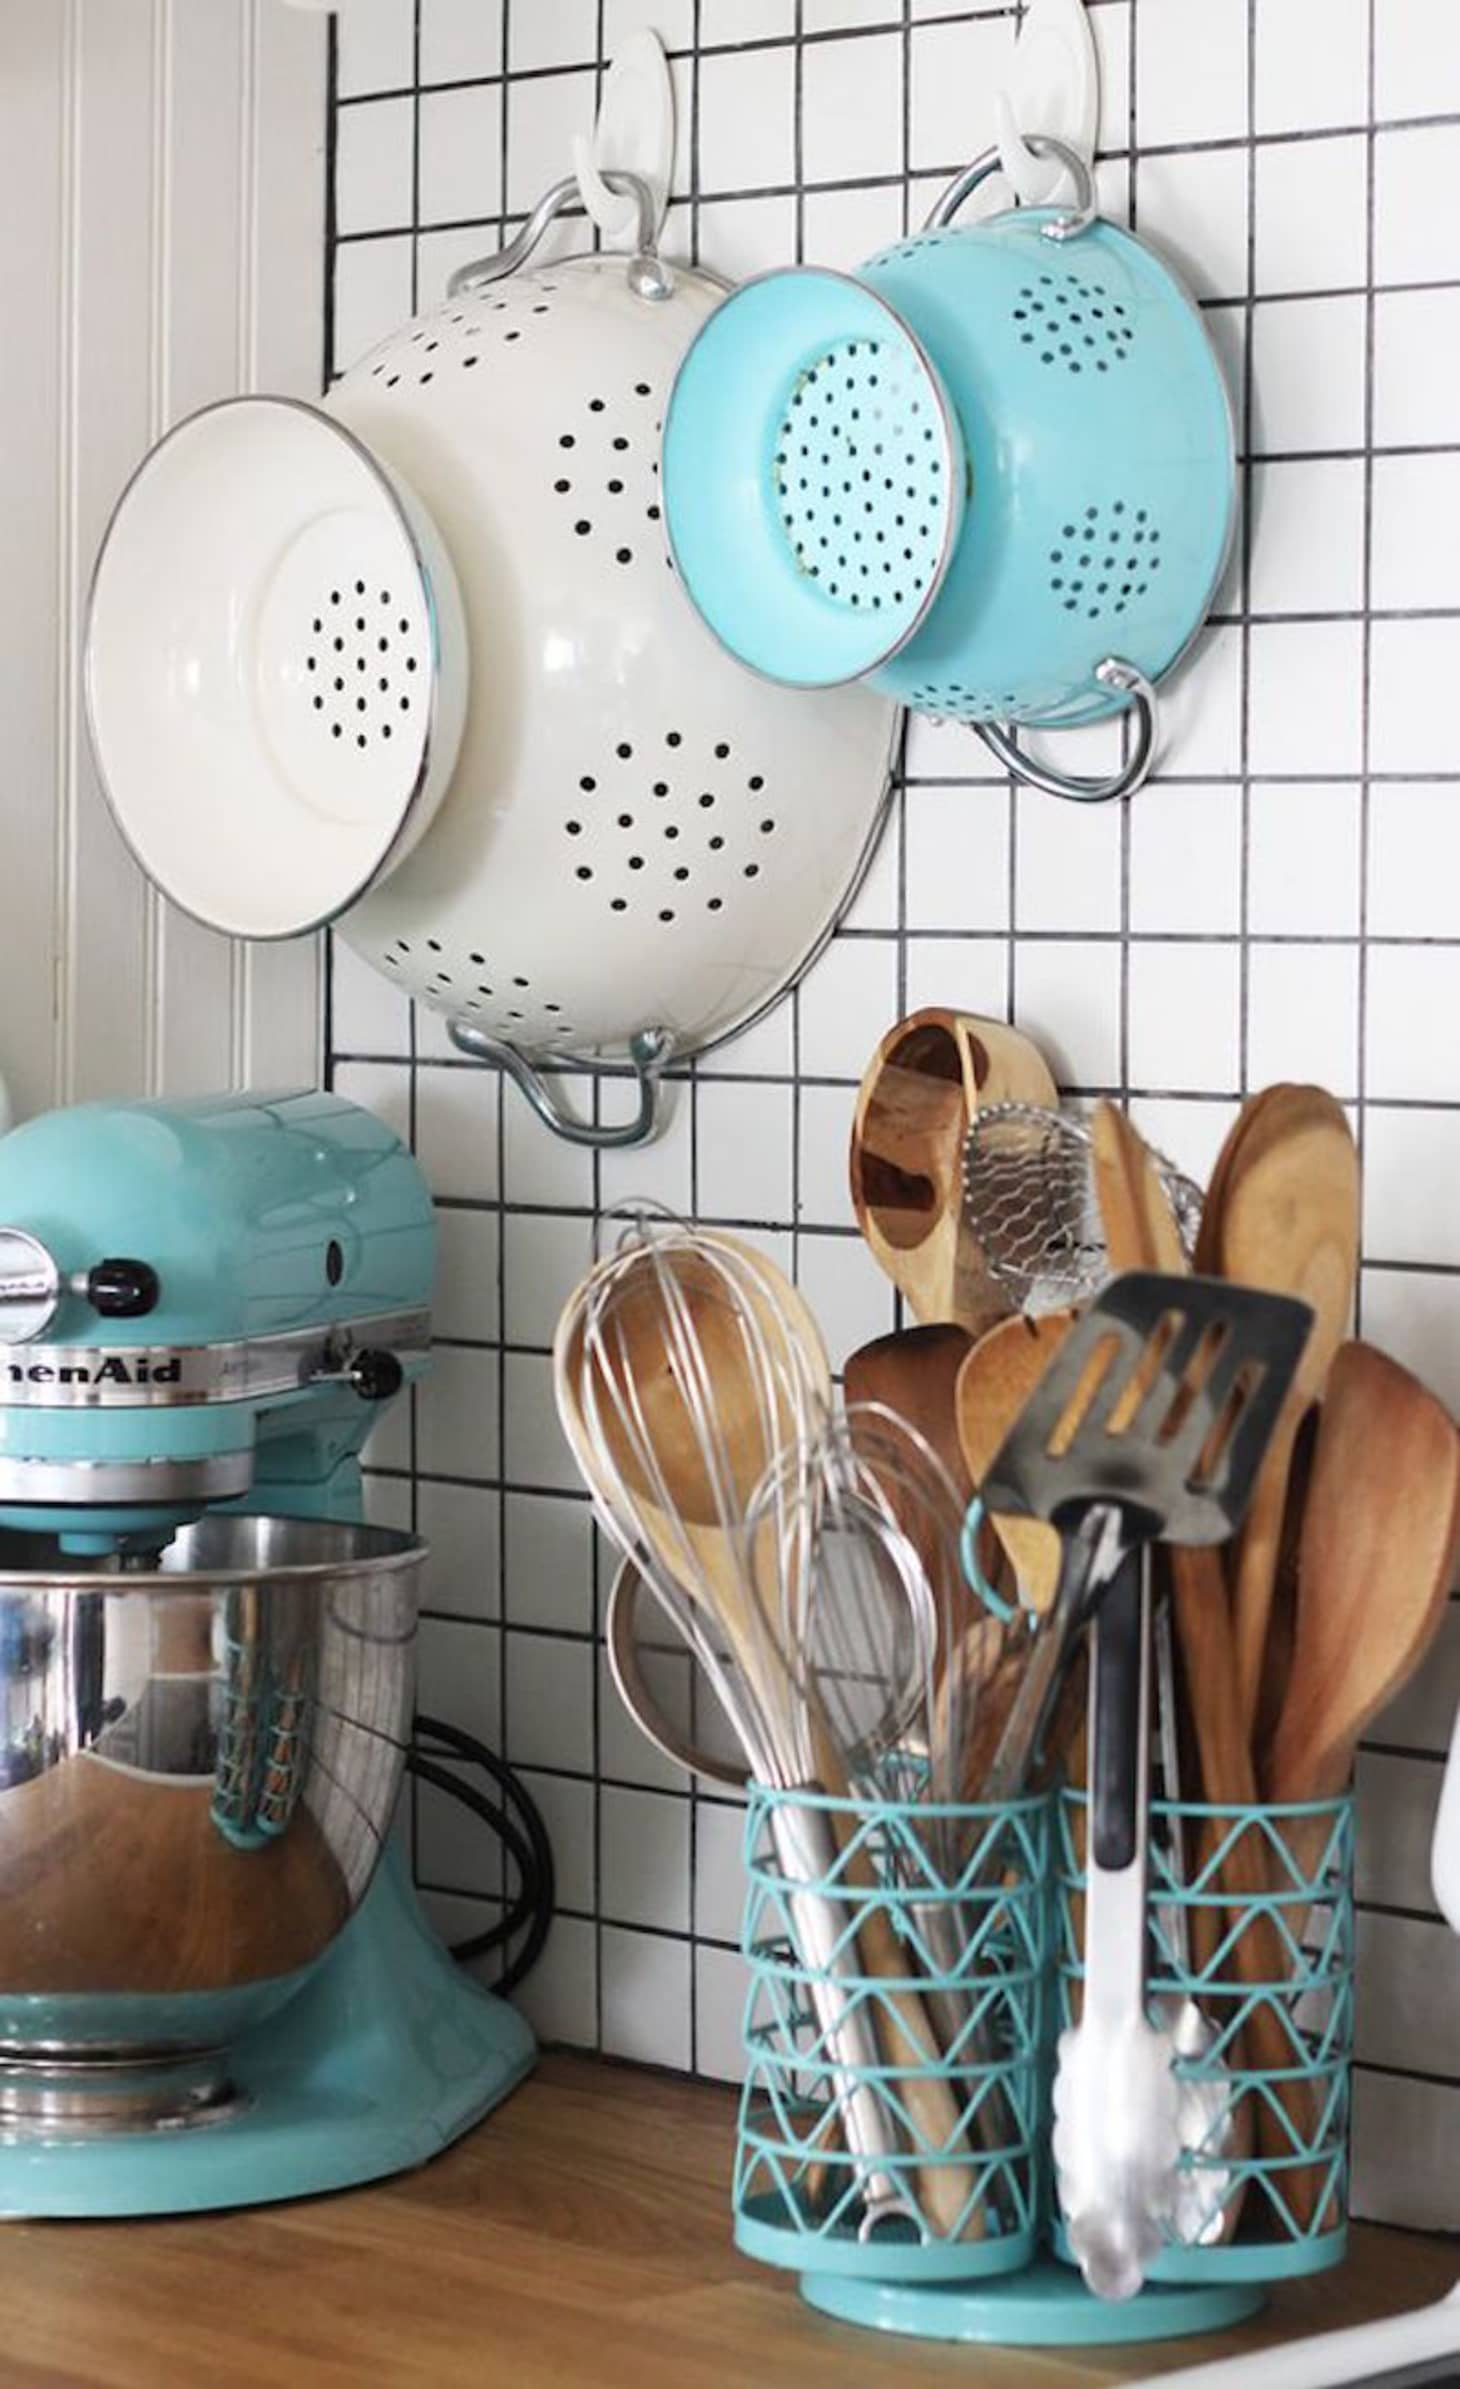 Creative Ways to Use Command Hooks All Over the House